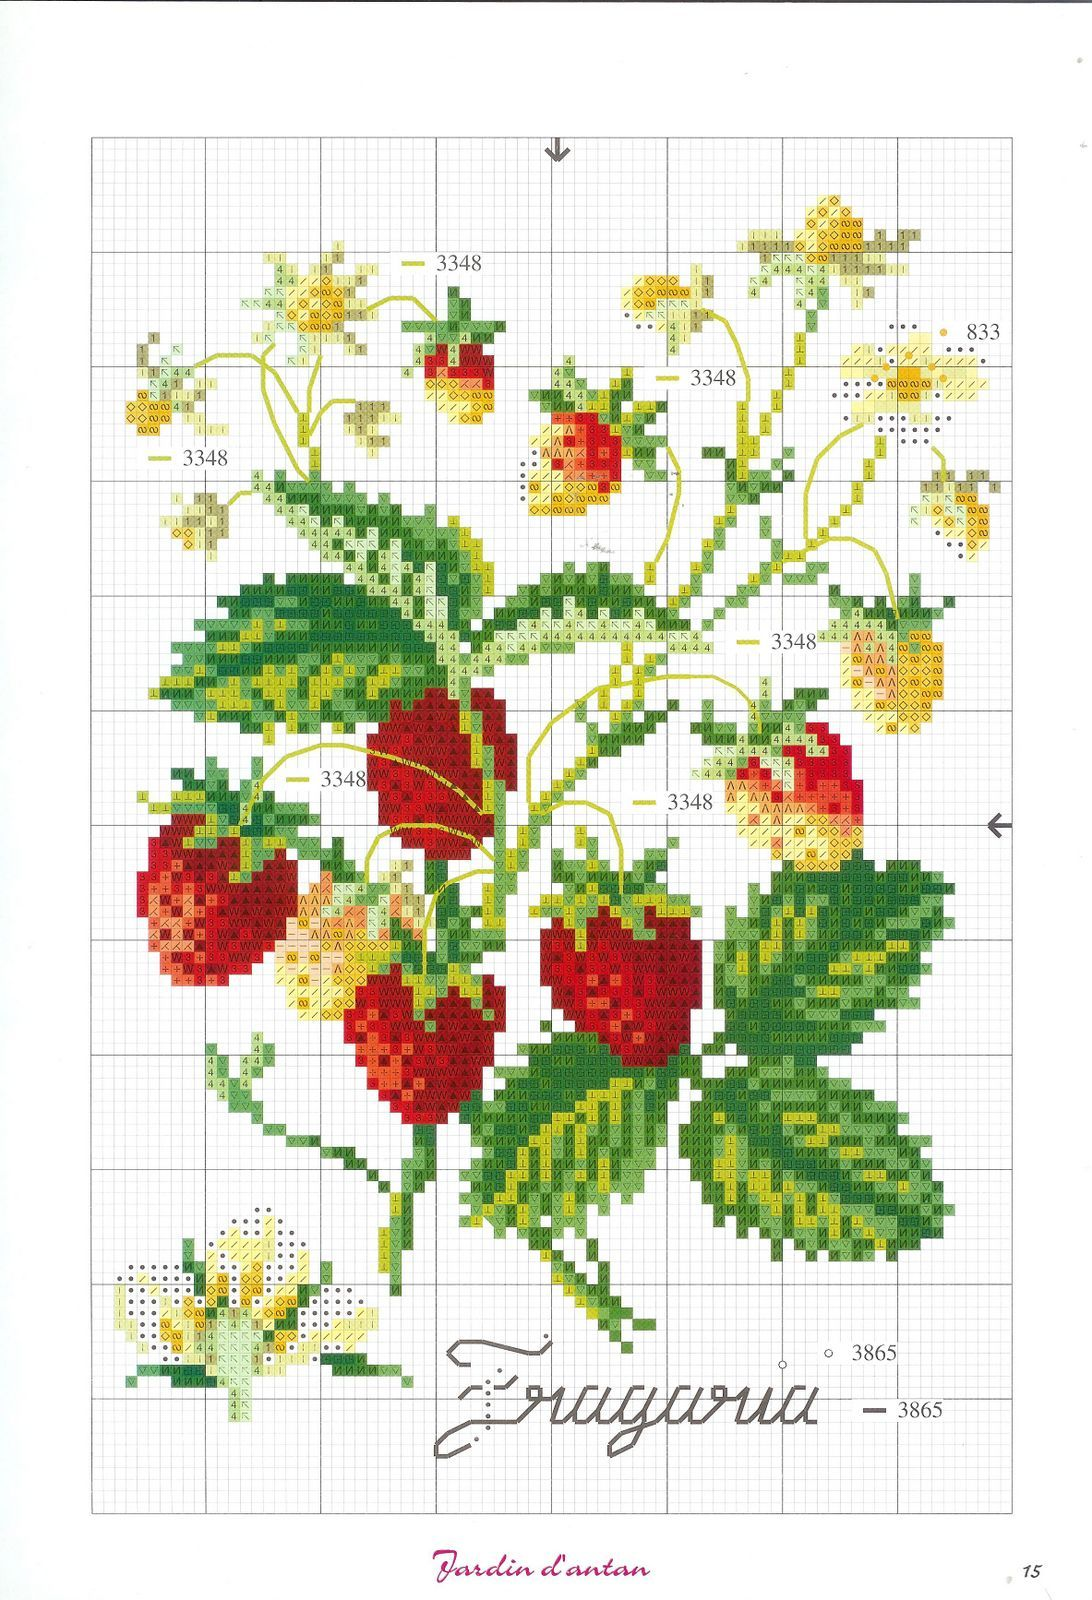 Strawberries dapur xs pinterest cross stitch stitch and